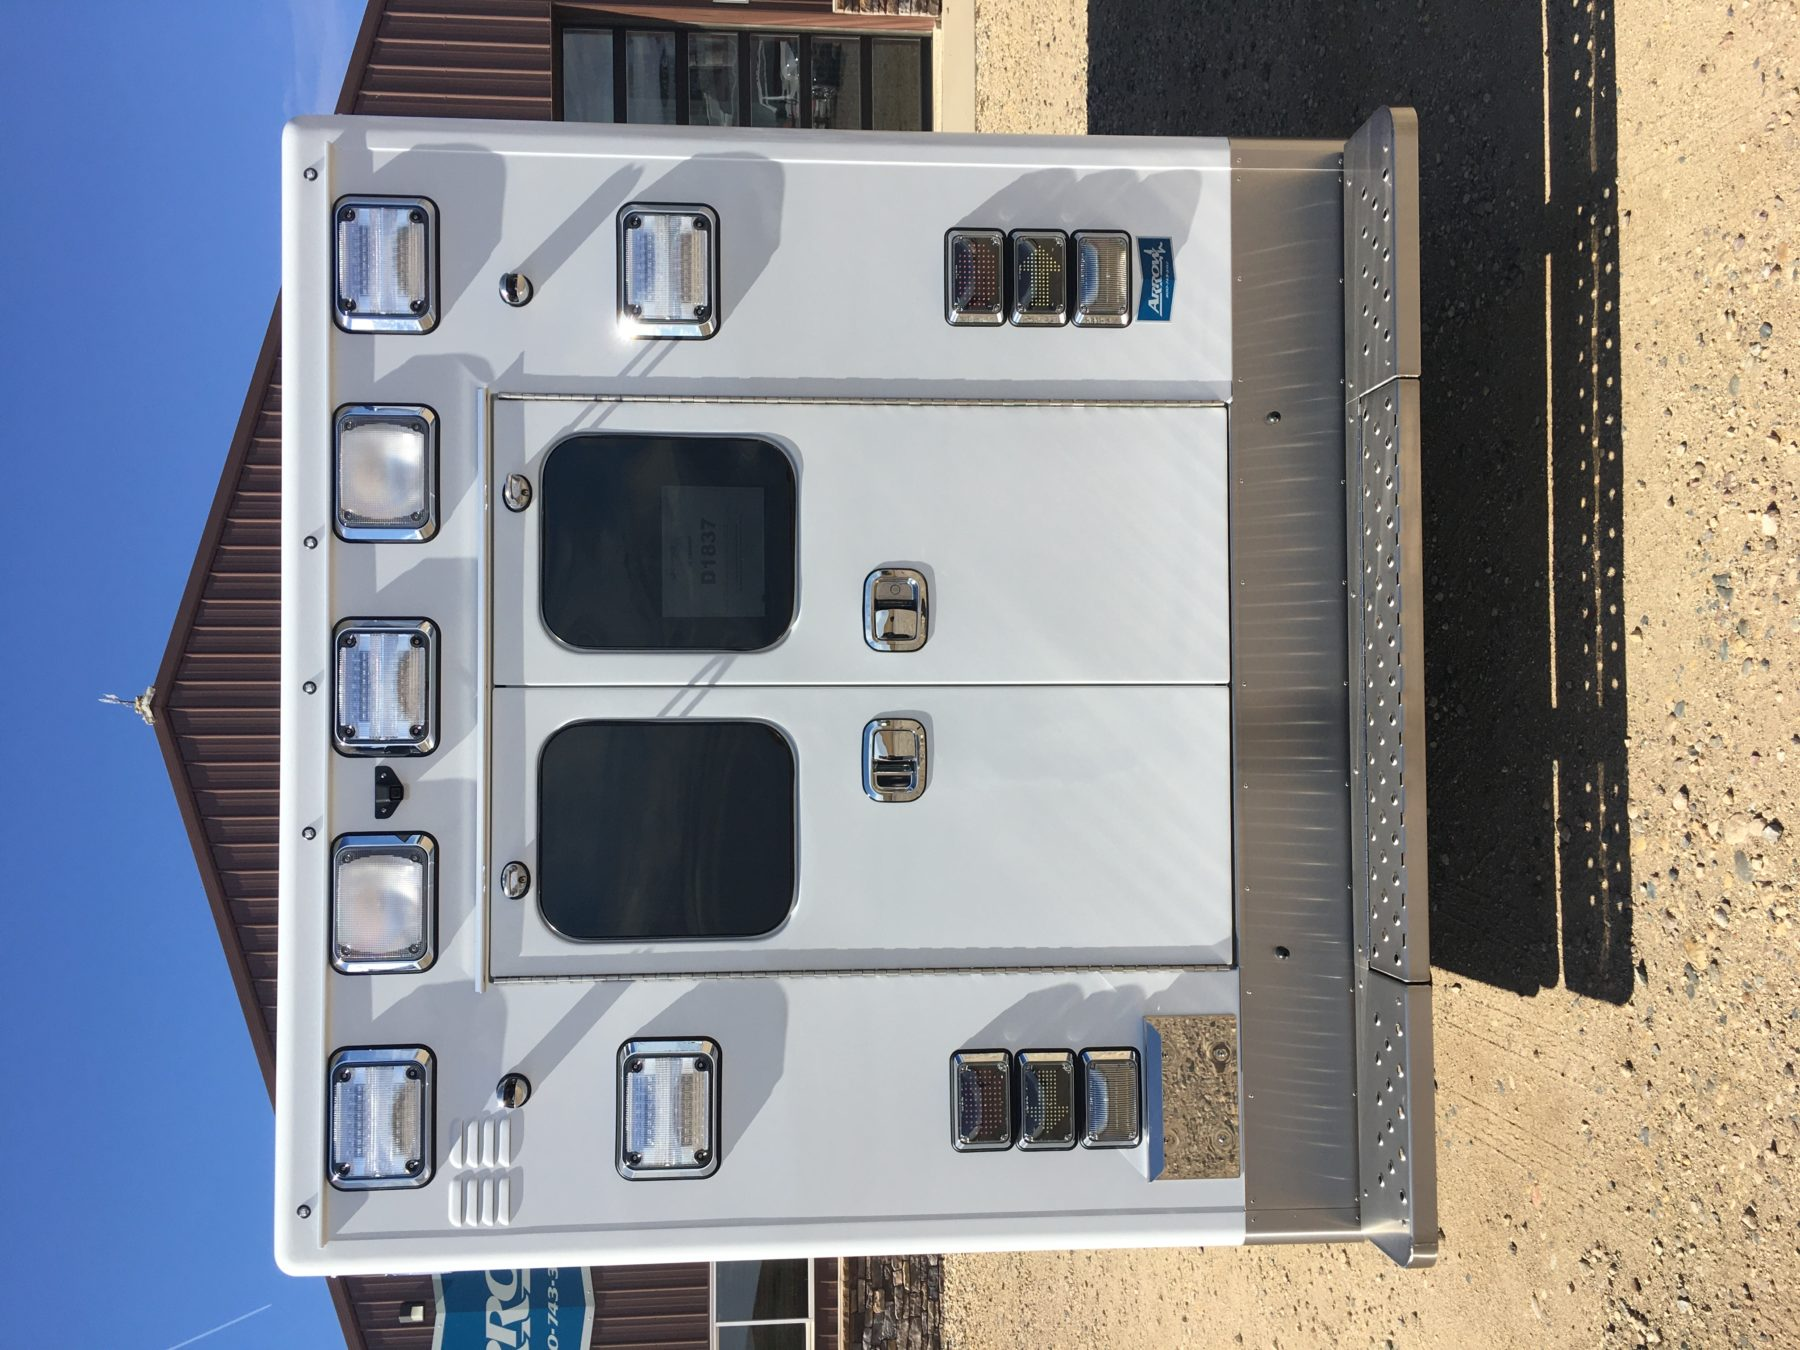 2020 Chevrolet G4500 Type 3 Ambulance For Sale – Picture 8